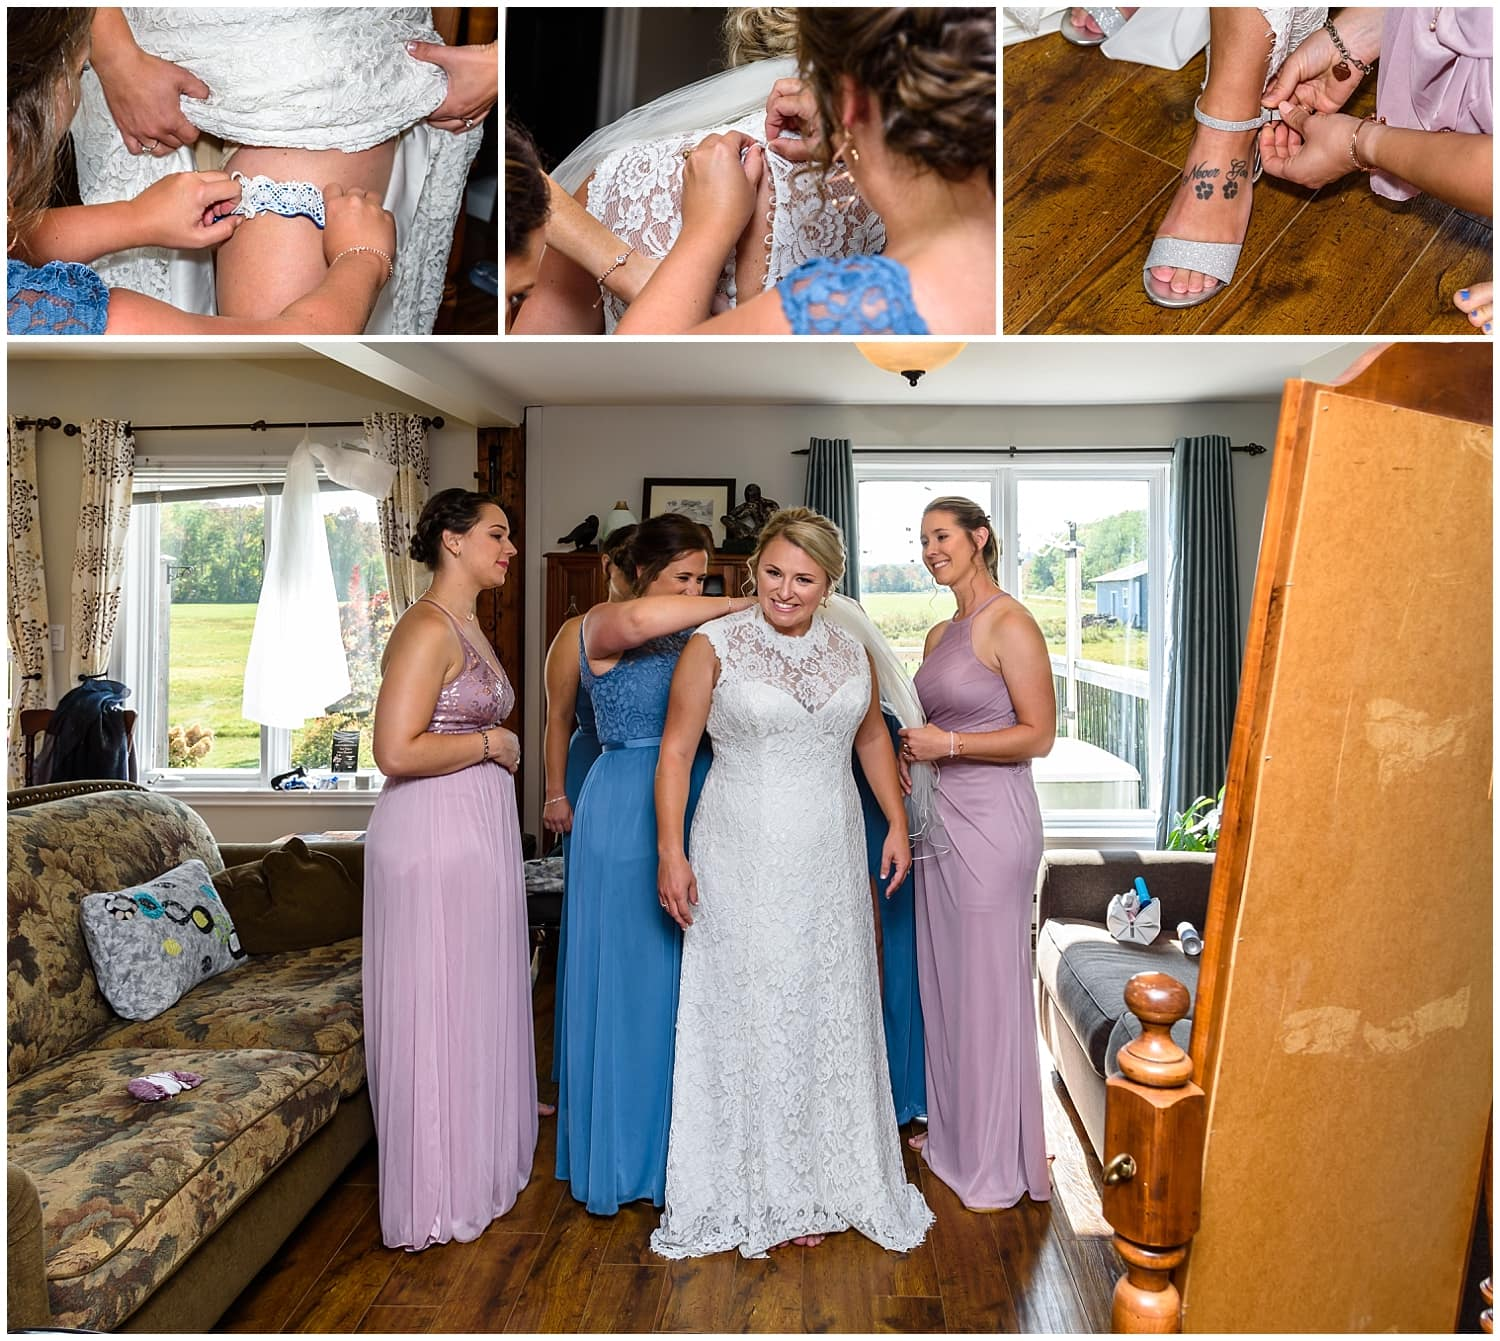 The bride with bridesmaids getting into her wedding dress during her bridal prep at the Barn at Sadie Belle Farm in Hantsport NS.